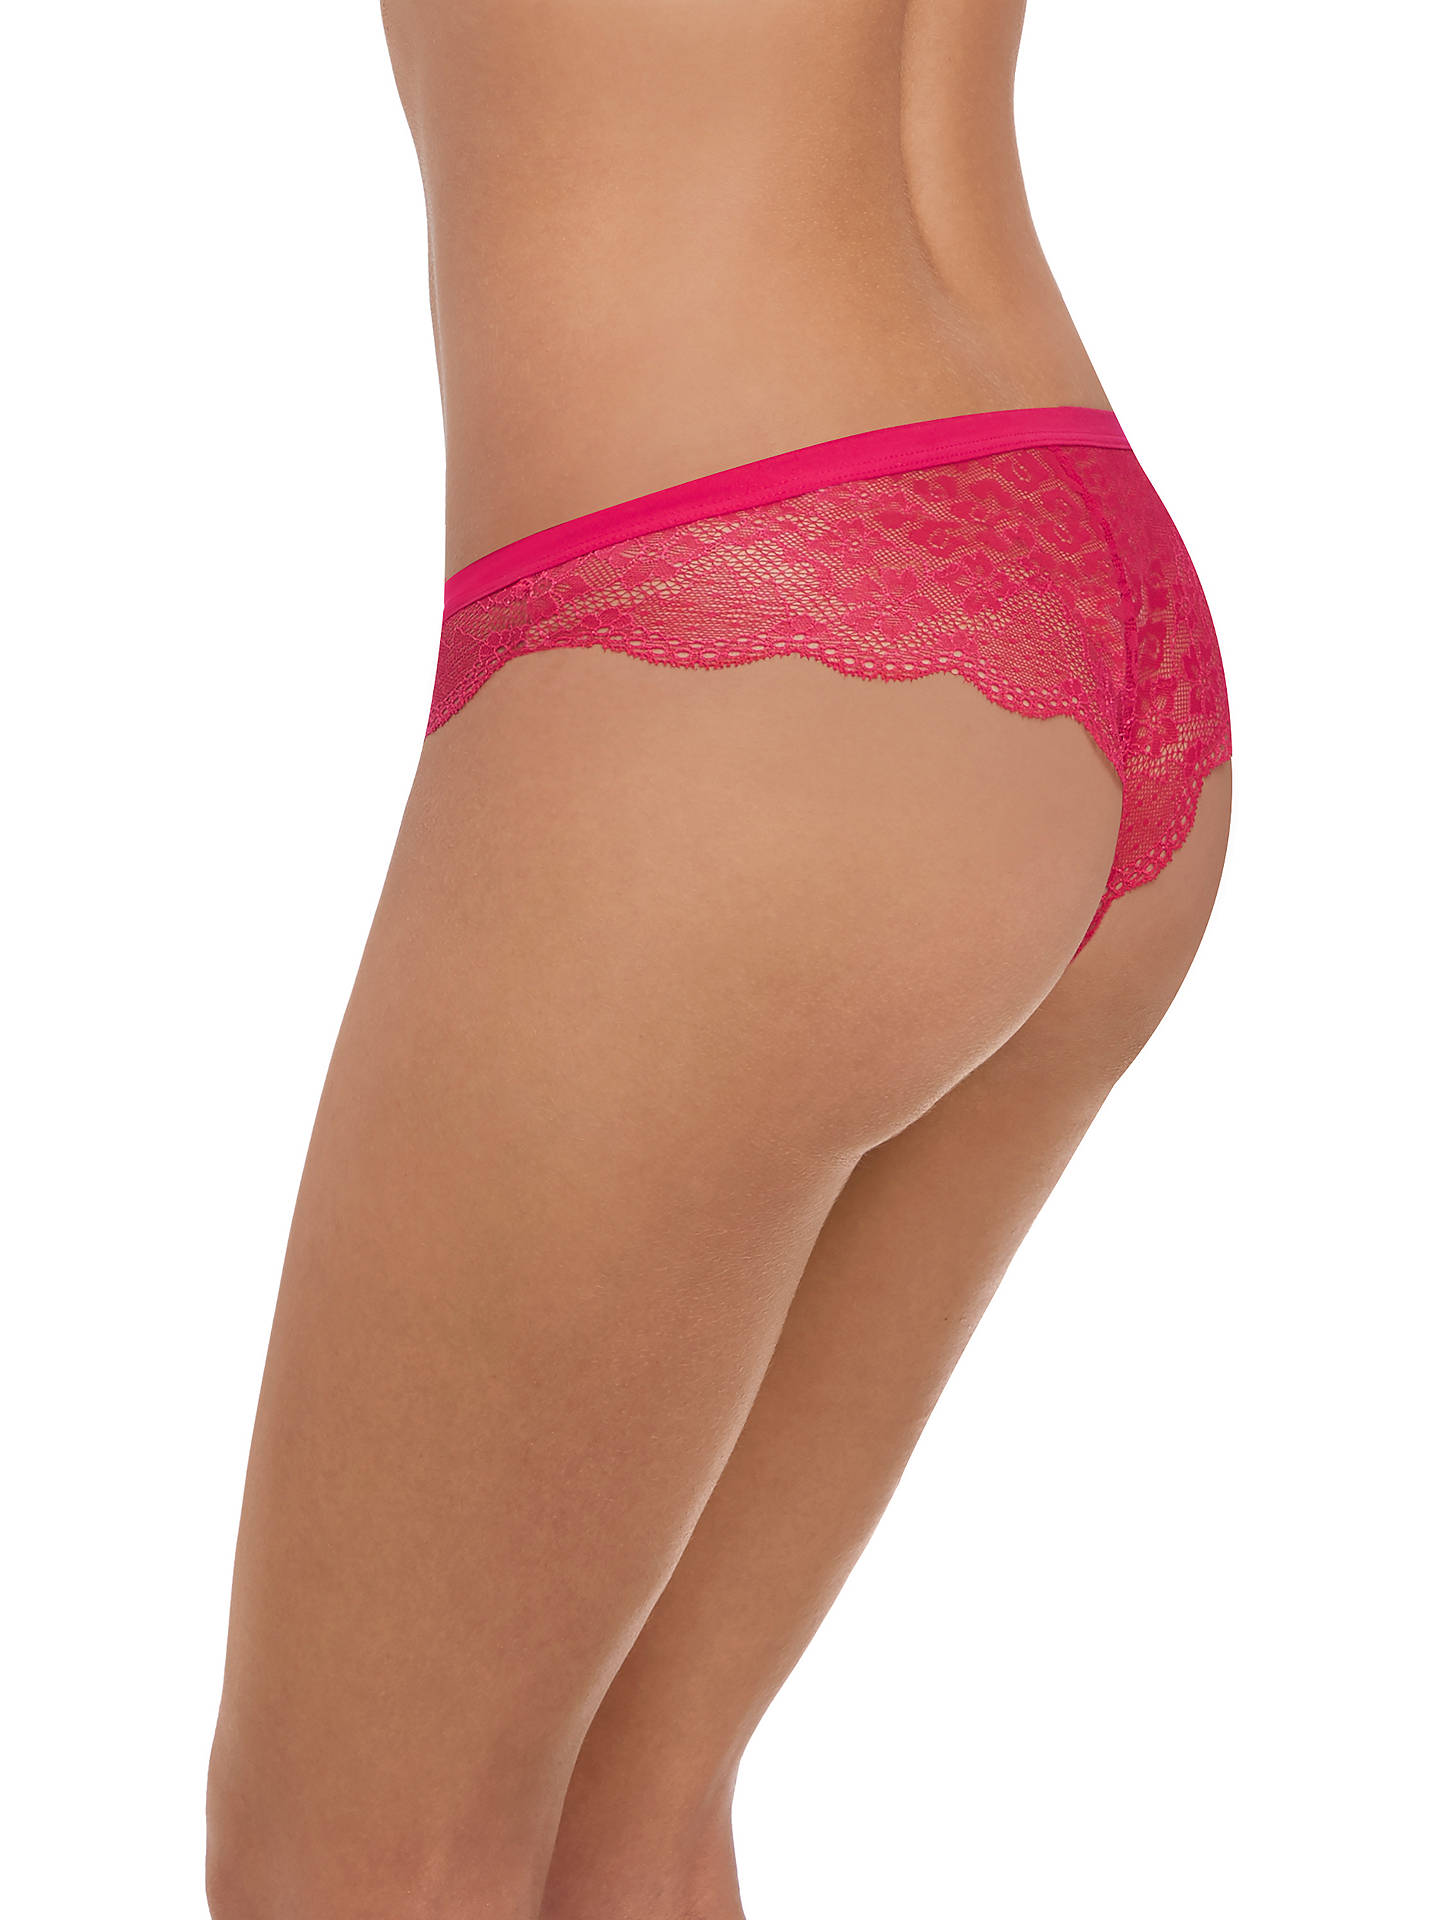 713f02adfdc4 ... Buy Freya Fancies Brazilian Briefs, Lipstick, XS Online at  johnlewis.com ...